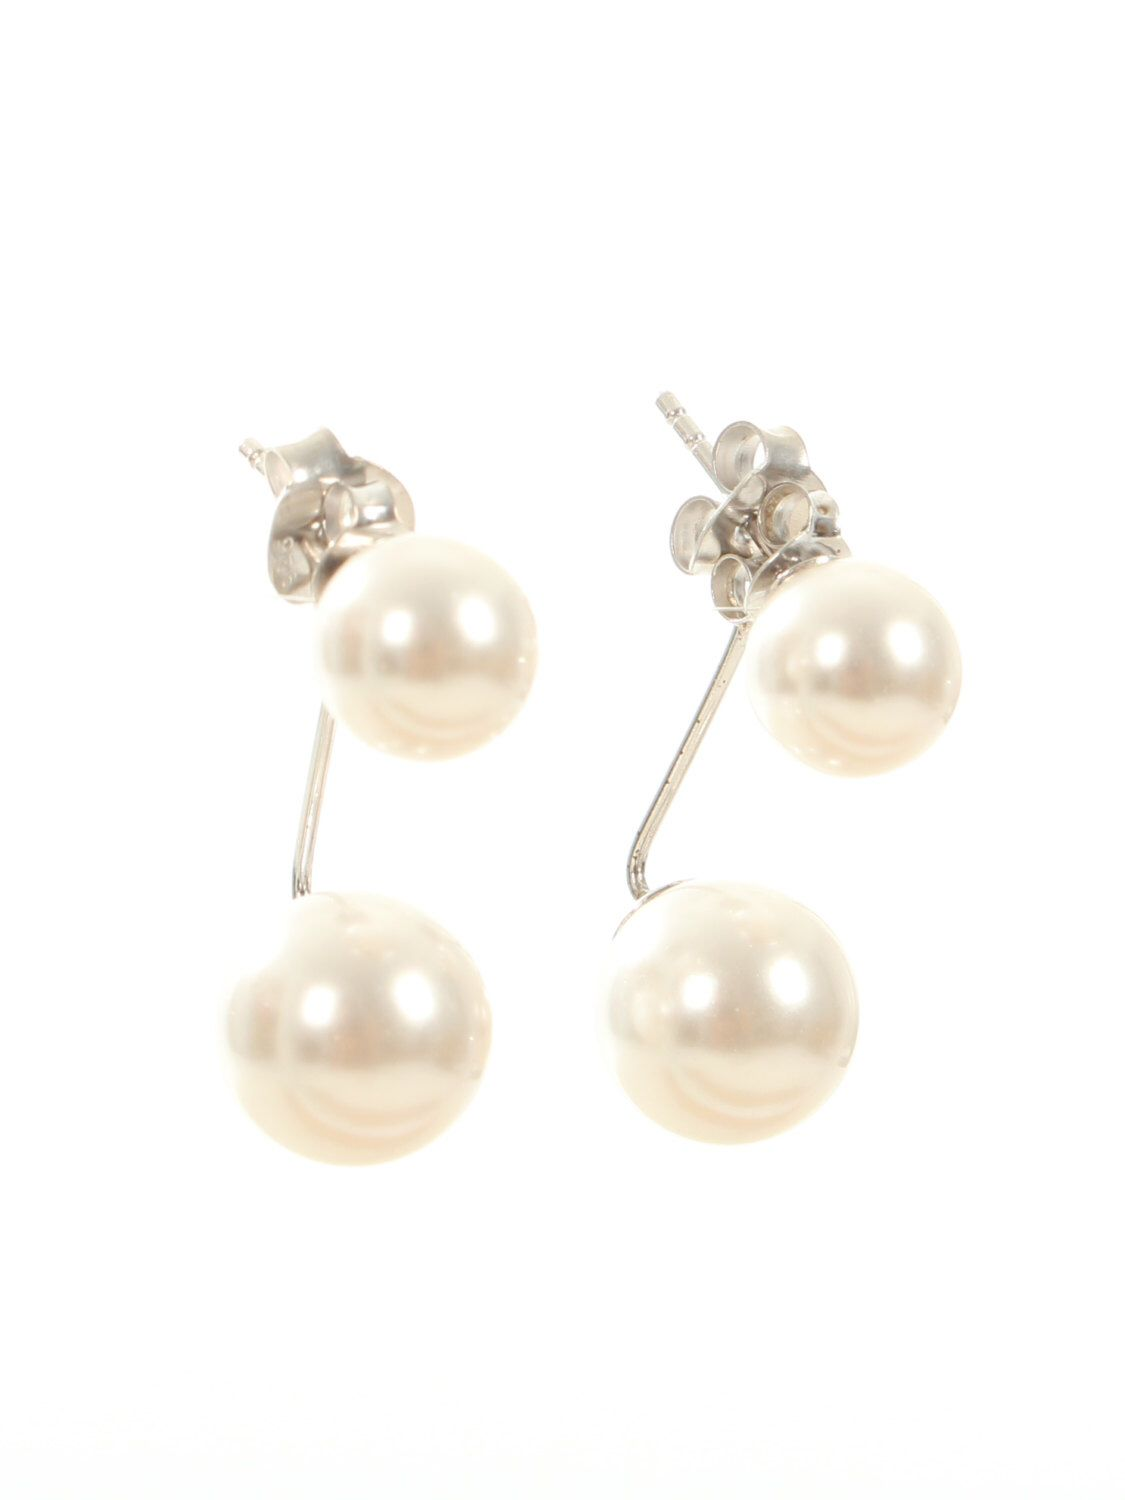 Pearl Earrings Set Wedding Jewellery Bridal Earings Floating Real Studs Sterling Silver Earring Bridesmaid